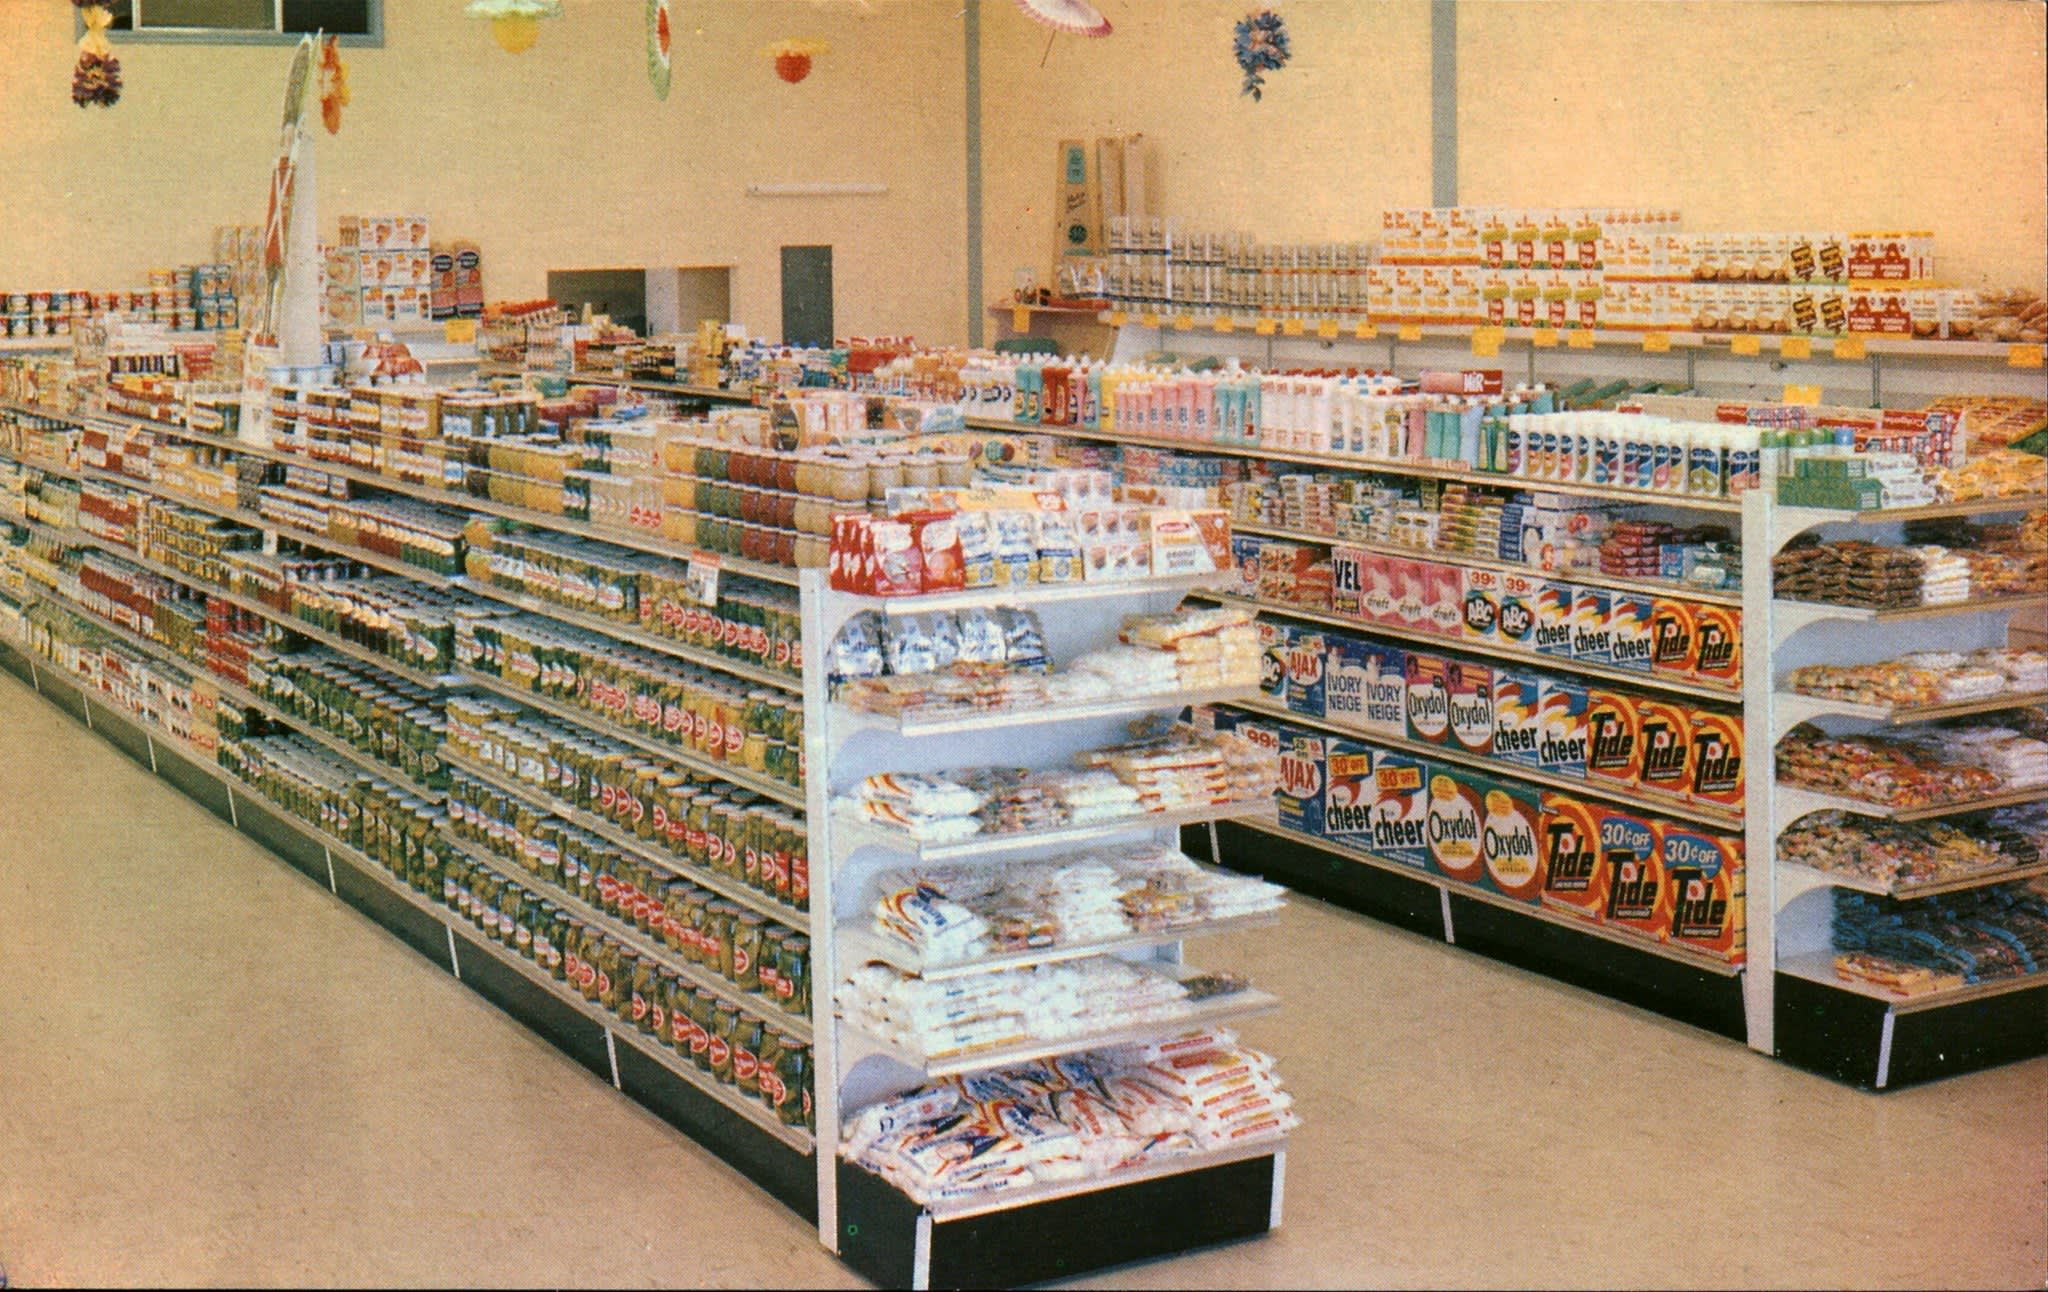 Endcap in Vintage Photo of Grocery Store